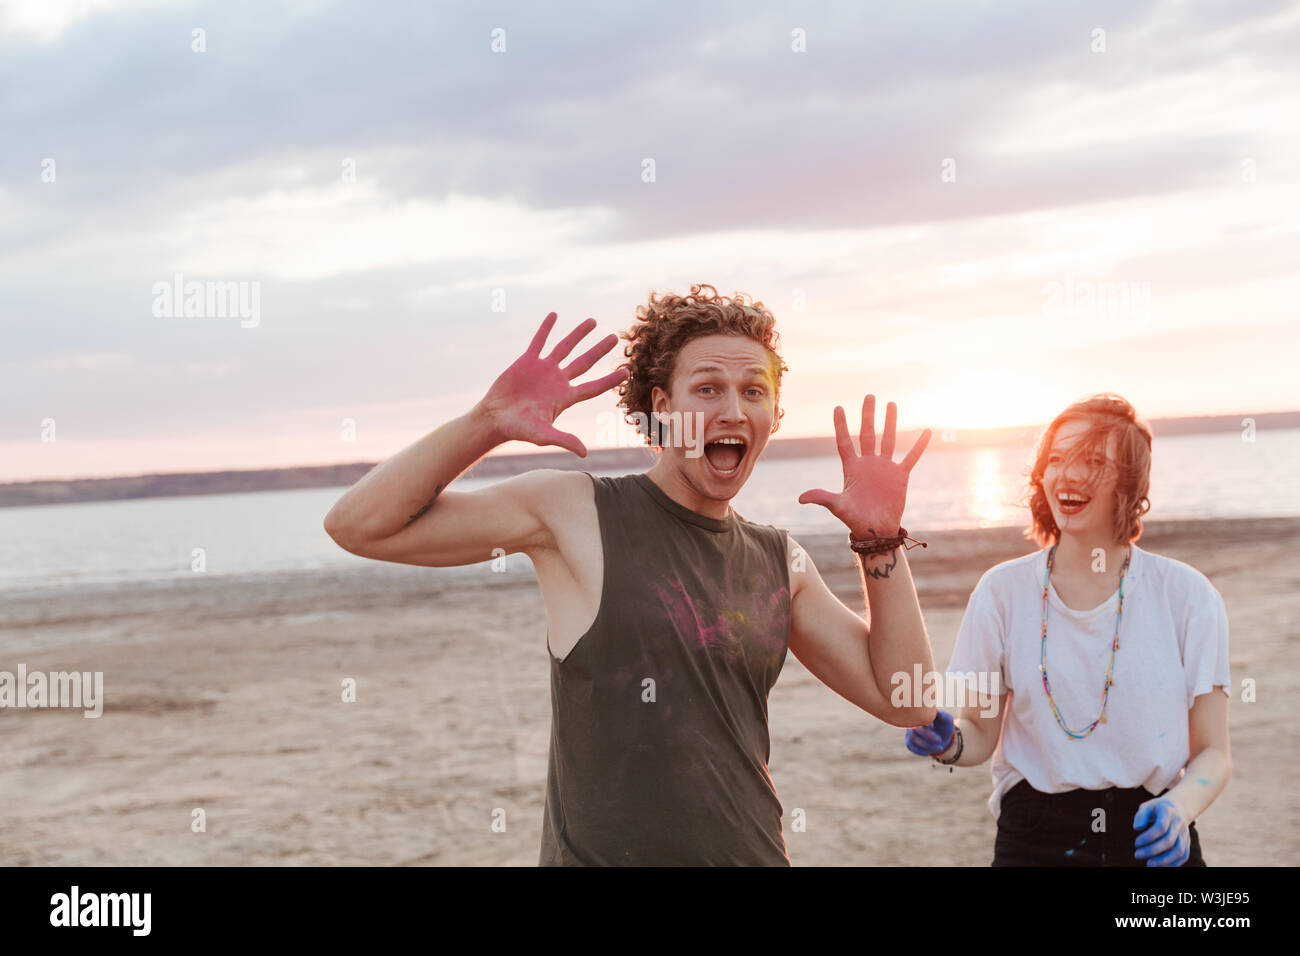 Two cheerful young friends having fun at the beach with colorful holi paint - Stock Image